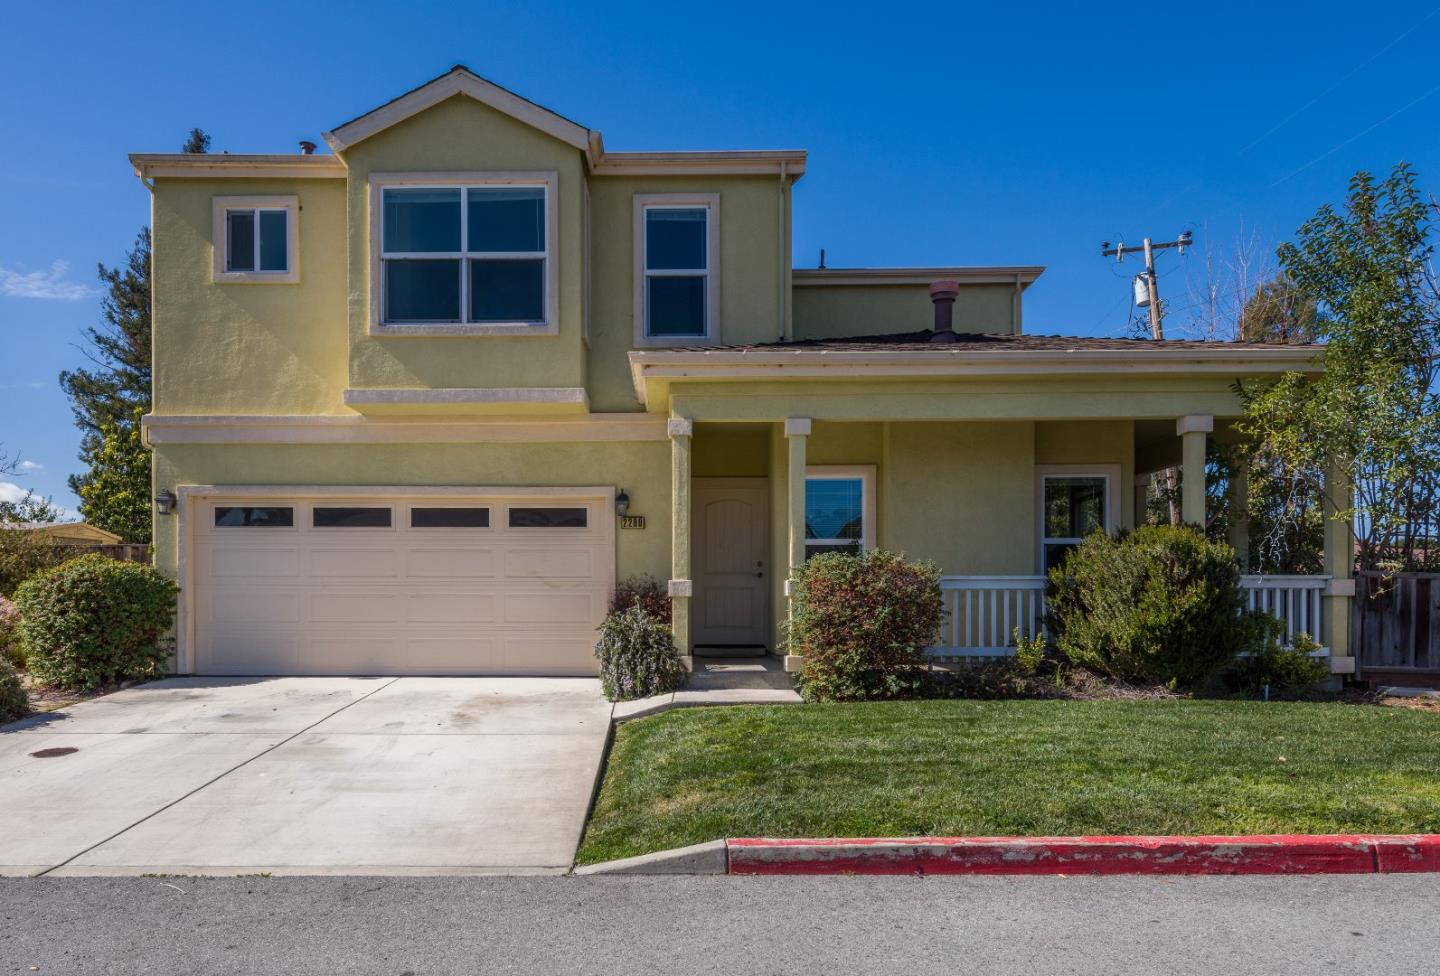 Detail Gallery Image 1 of 15 For 2289 Tuscany Ct, East Palo Alto, CA, 94303 - 4 Beds | 2/1 Baths